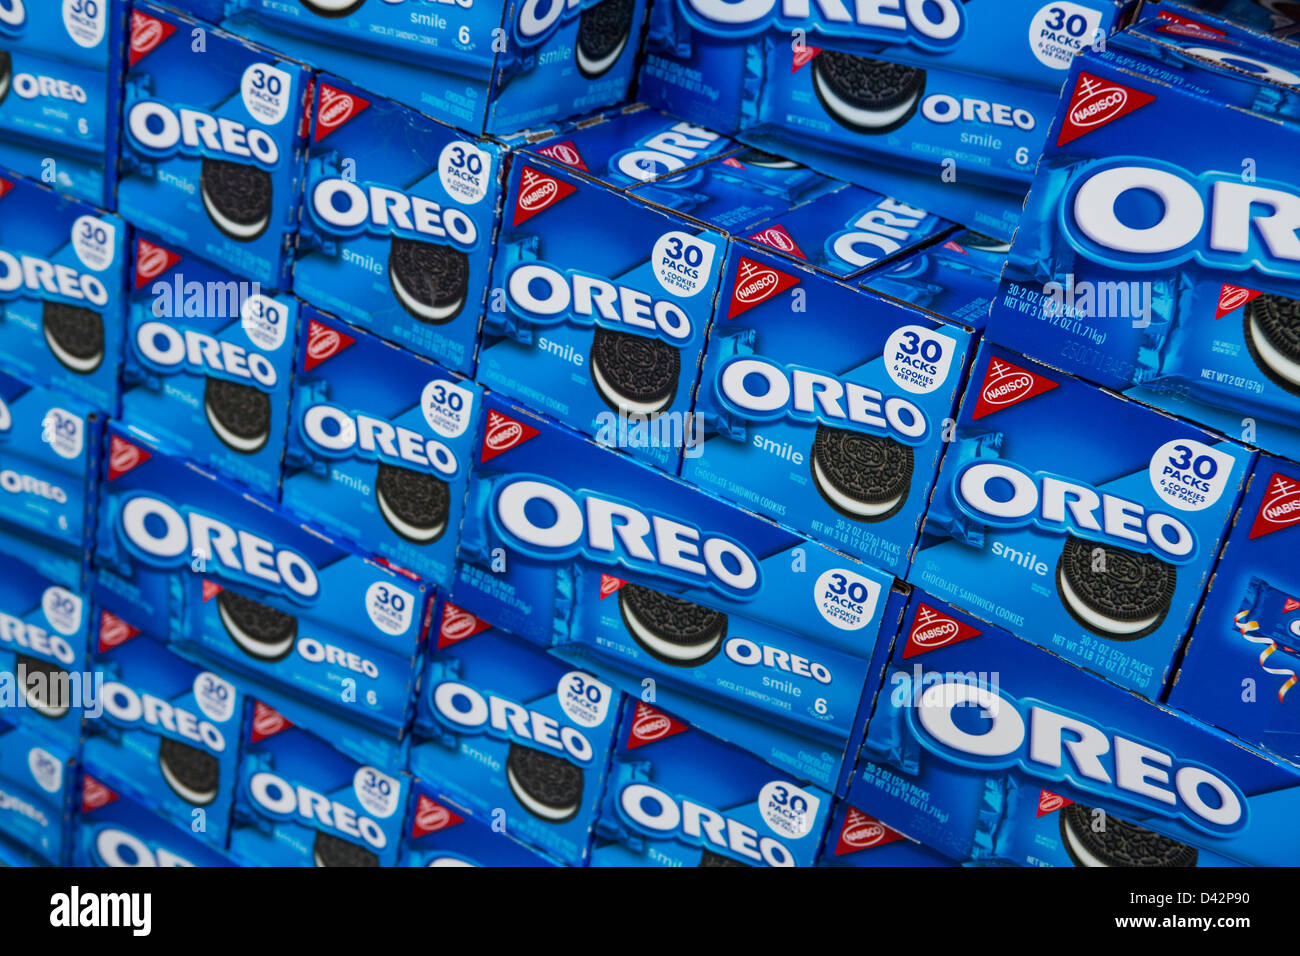 Oreo cookies on display at a costco wholesale warehouse club stock oreo cookies on display at a costco wholesale warehouse club stock photo 54151132 alamy thecheapjerseys Images